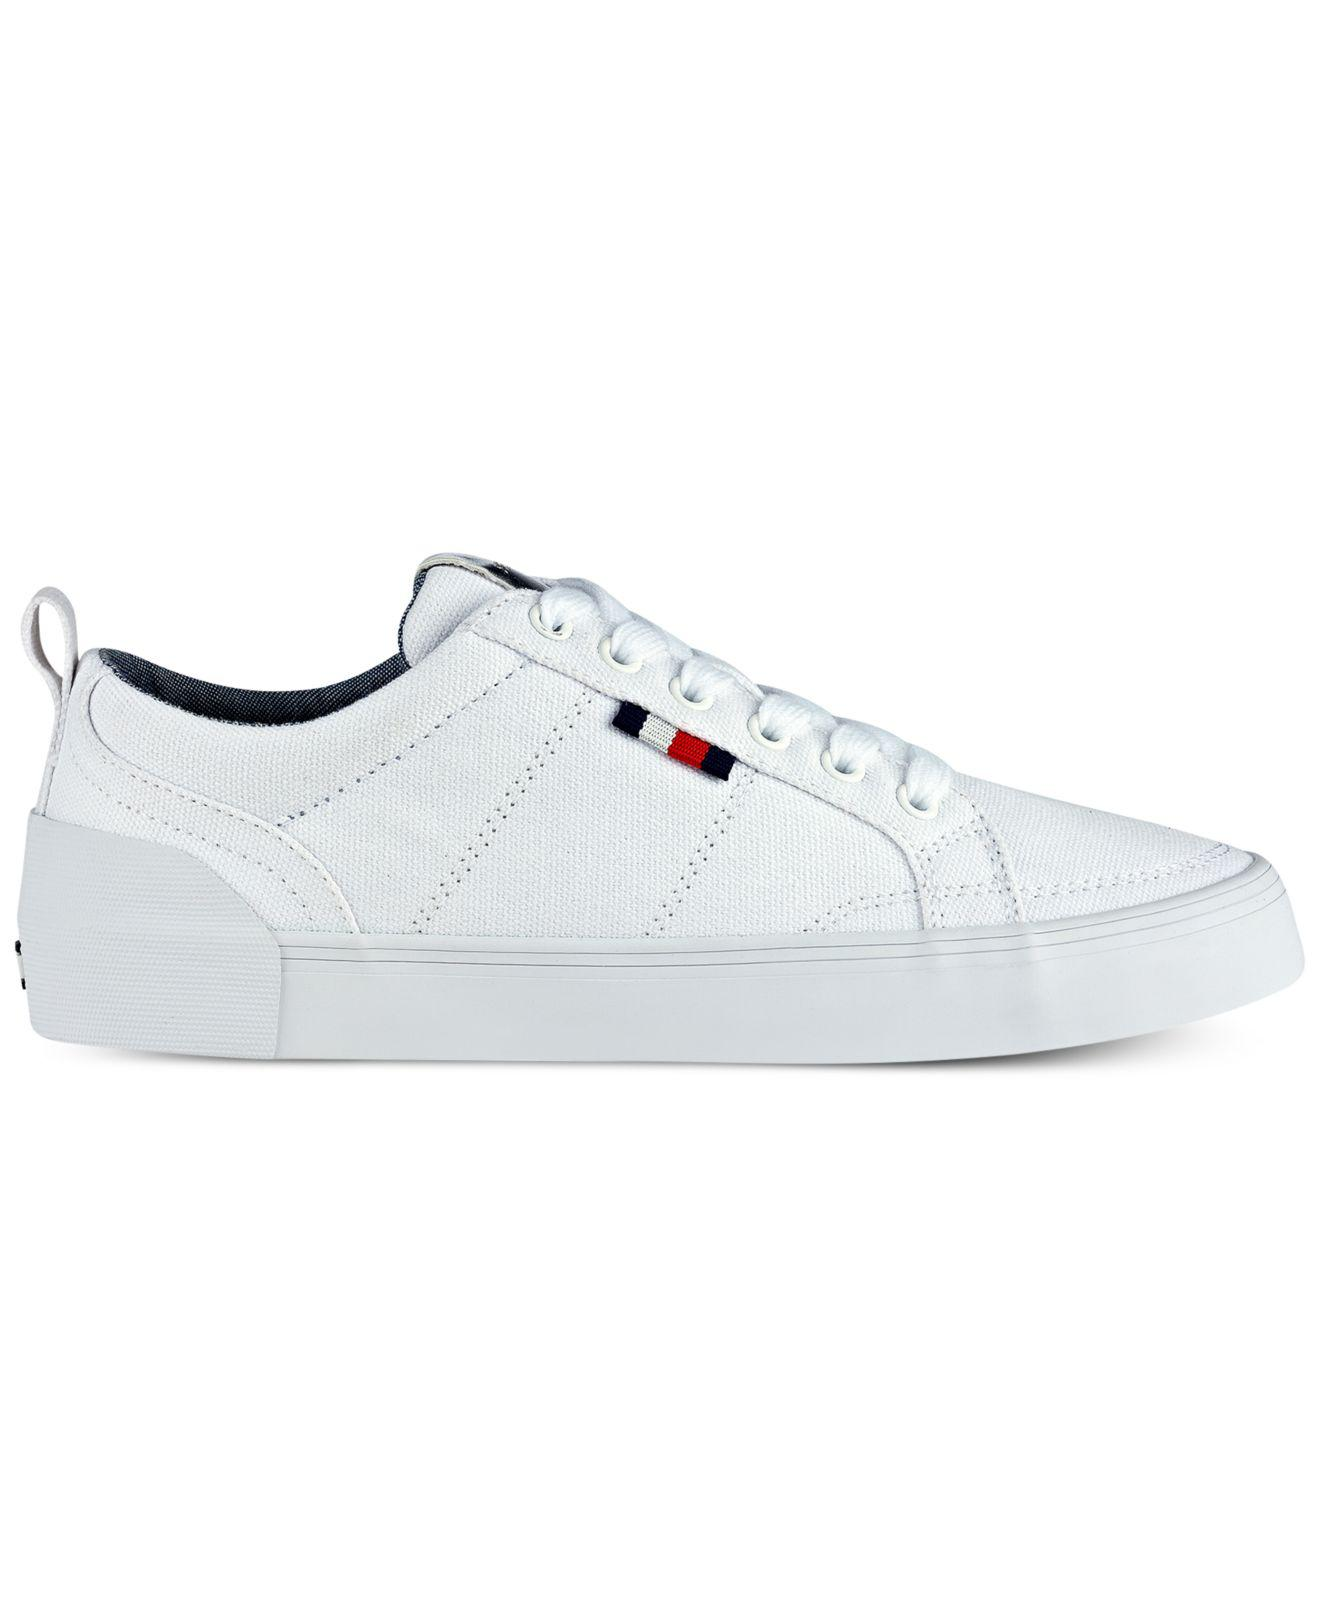 45ebd519bb520 Lyst - Tommy Hilfiger Priss Lace-up Sneakers in White